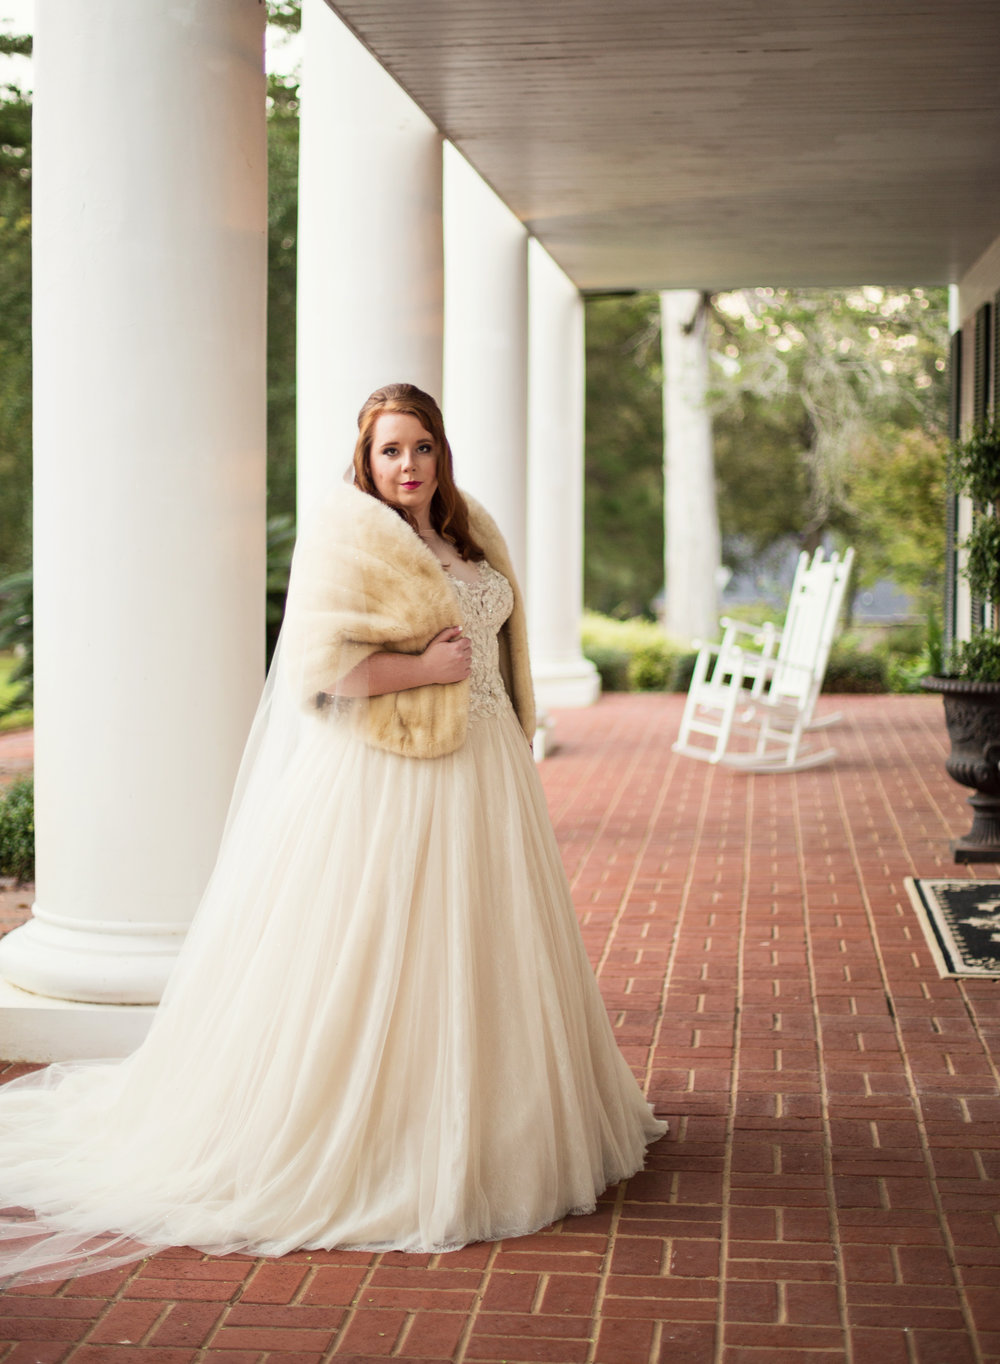 Southern Bride at CedarCroft Plantation